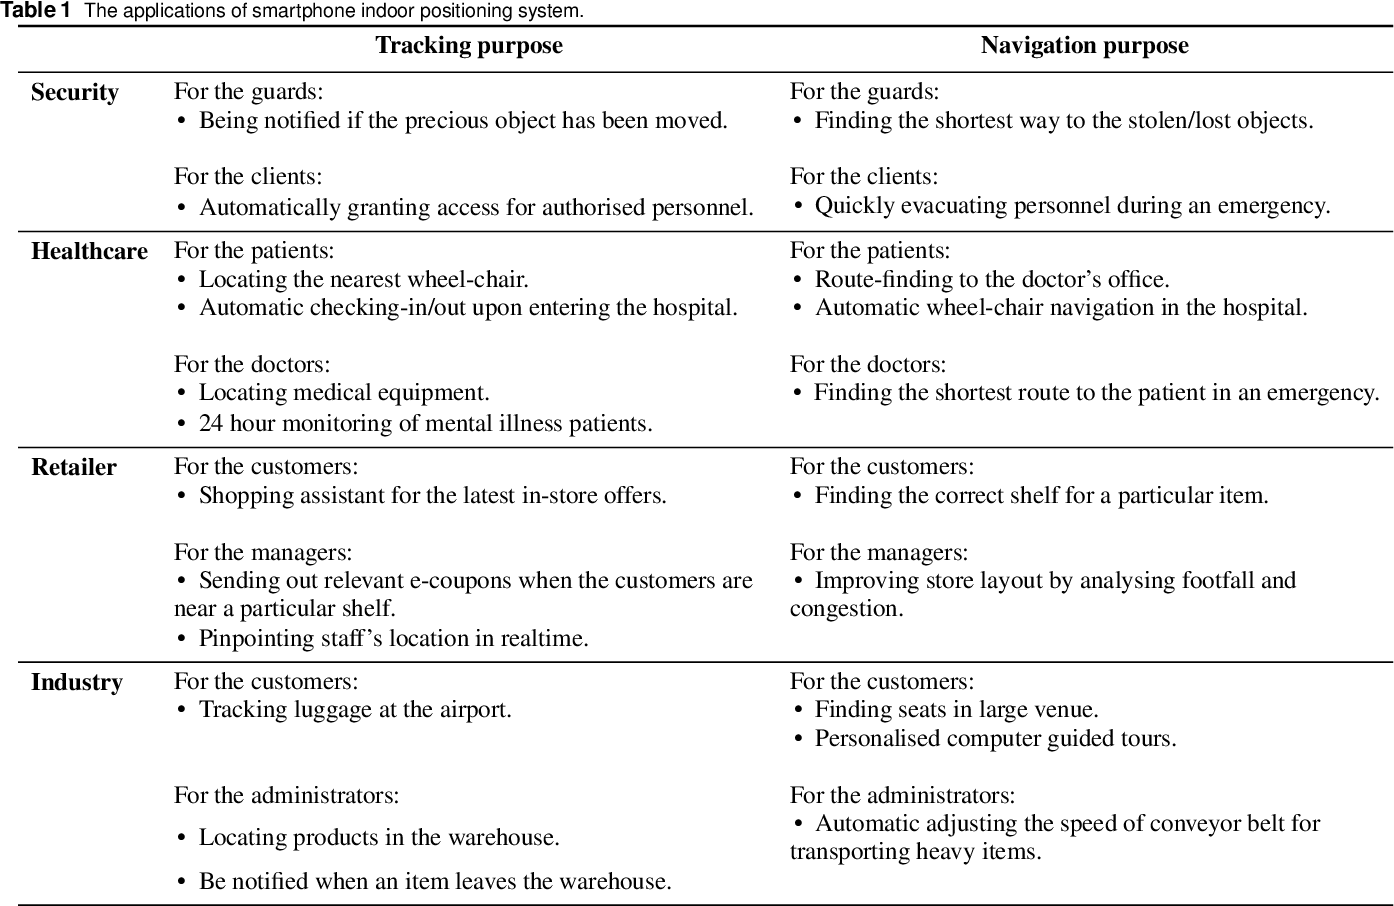 Figure 2 for A review of smartphones based indoor positioning: challenges and applications